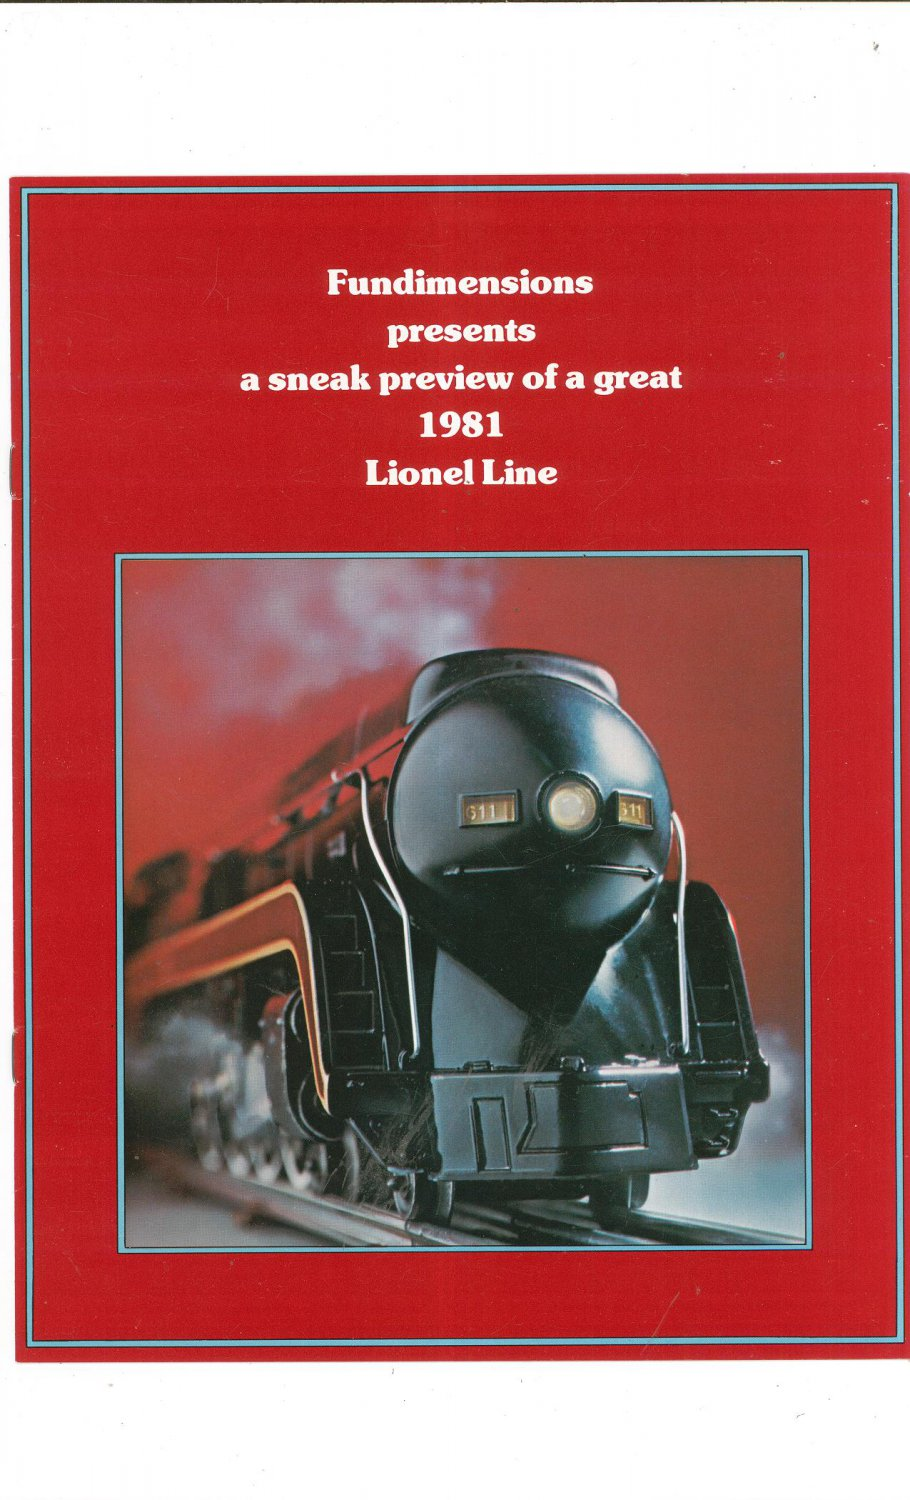 Vintag Sneak Preview Great 1981 Lionel Line Trains Brochure Not PDF Free Shipping Offer